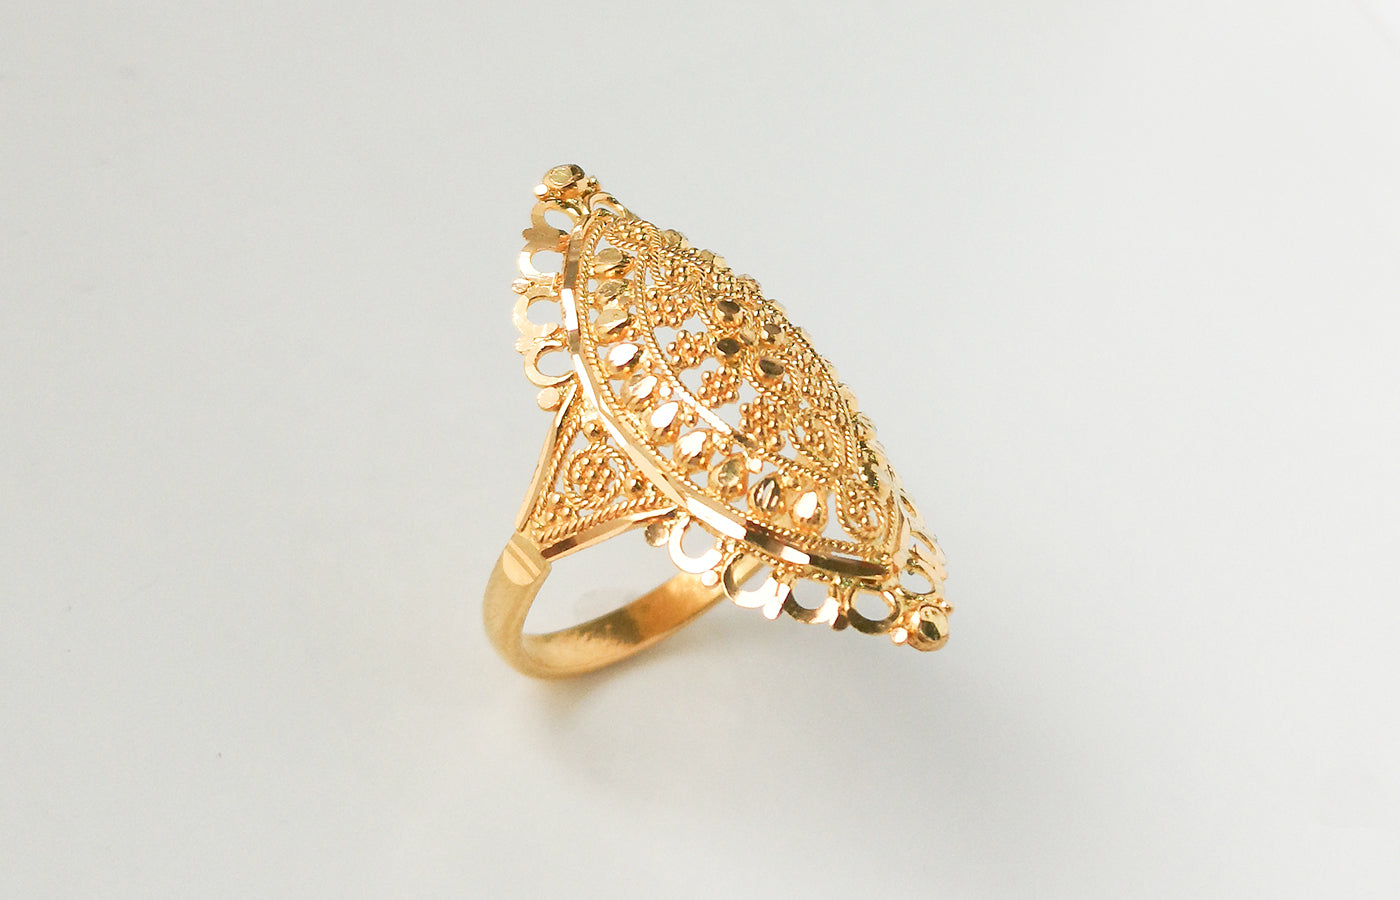 22ct Gold Filigree Dress Ring (4.1g) LR-7522